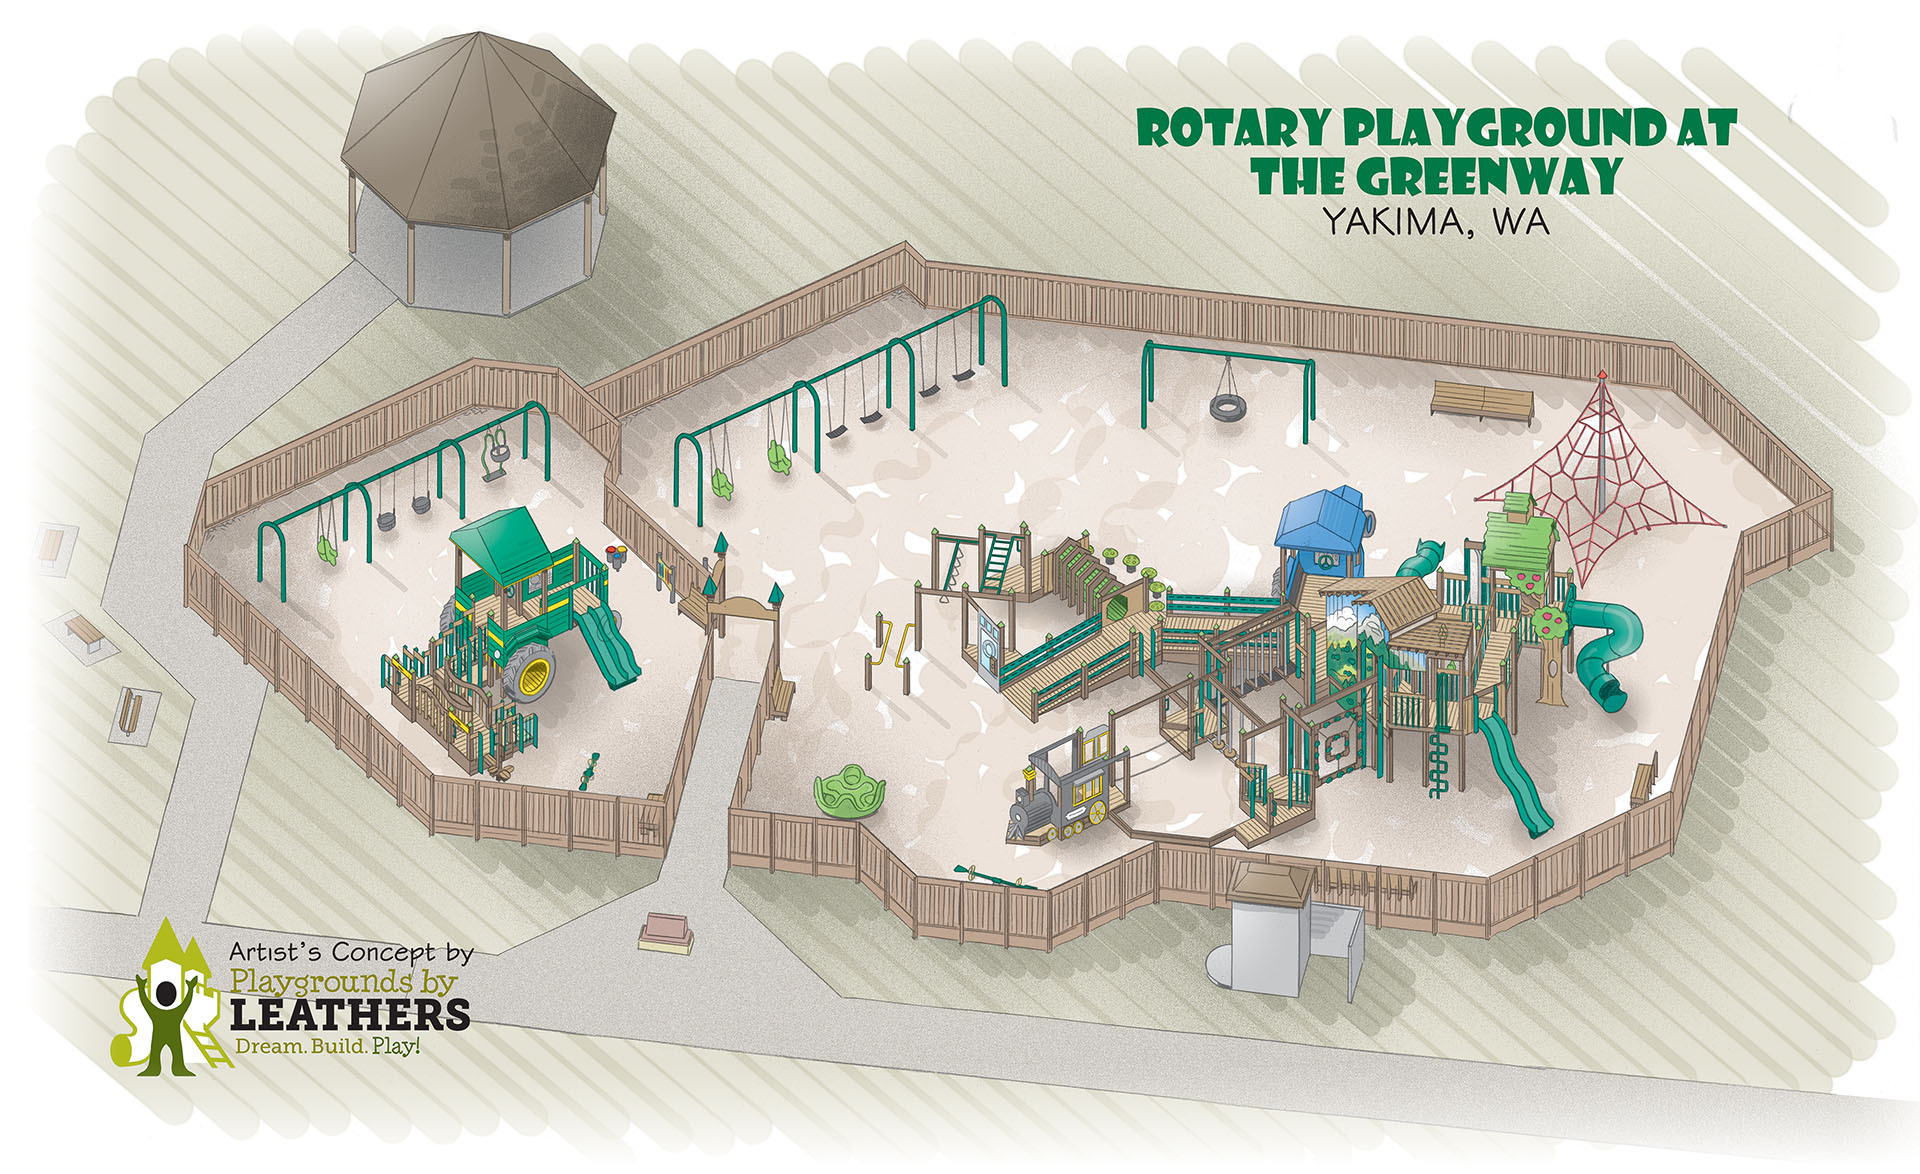 Rendering of Greenway Playground at Rotary Park